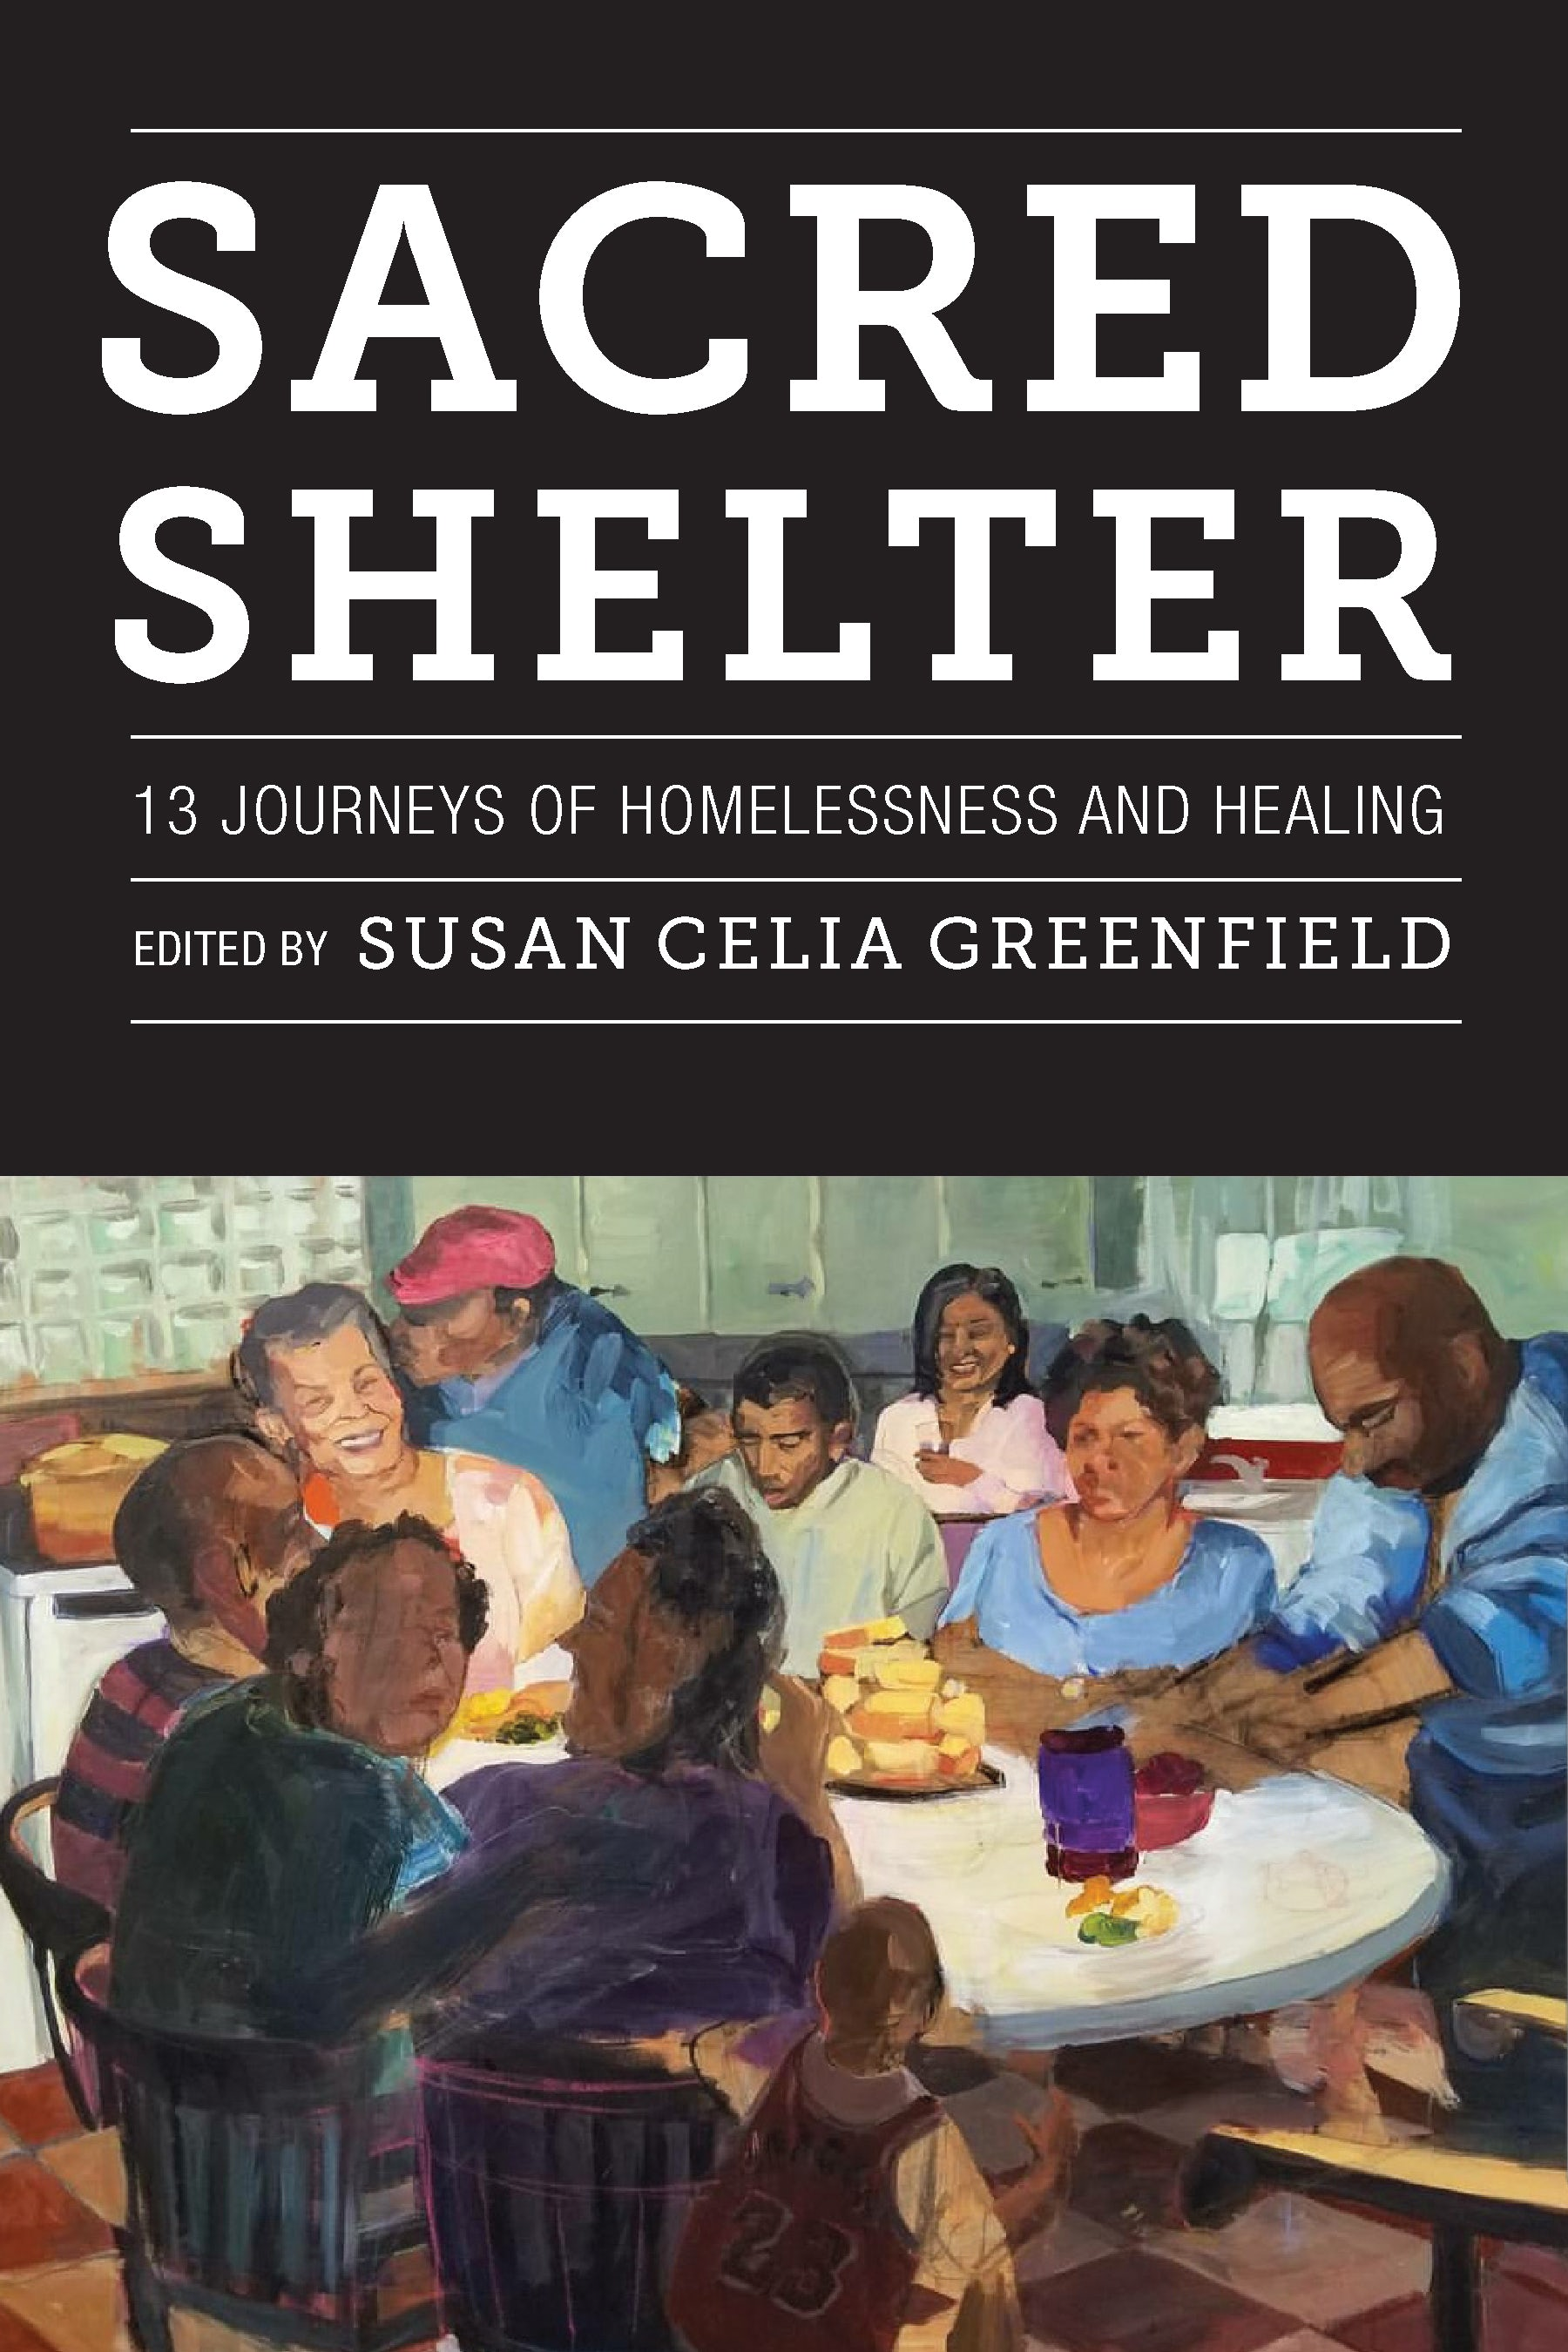 """Book Cover: """"Sacred Shelter—13 Journeys of Homelessness and Healing"""", Edited by Susan Celia Greenfield"""